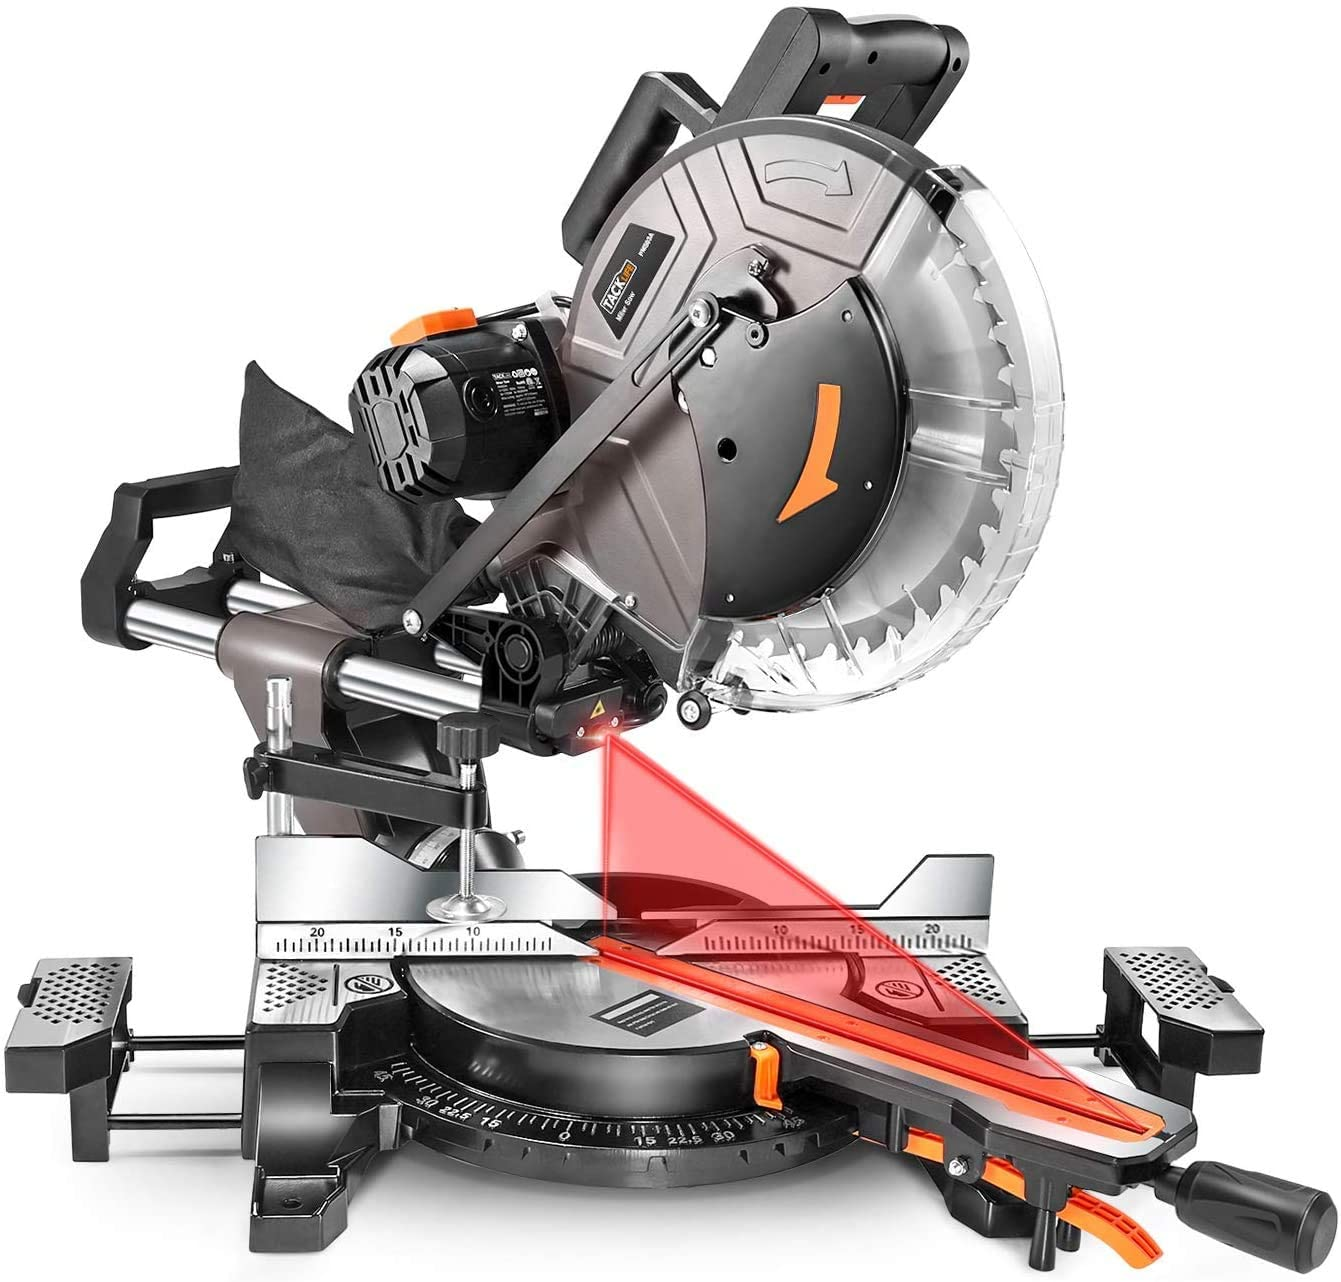 tacklife pms03a sliding compound miter saw isolated on white background